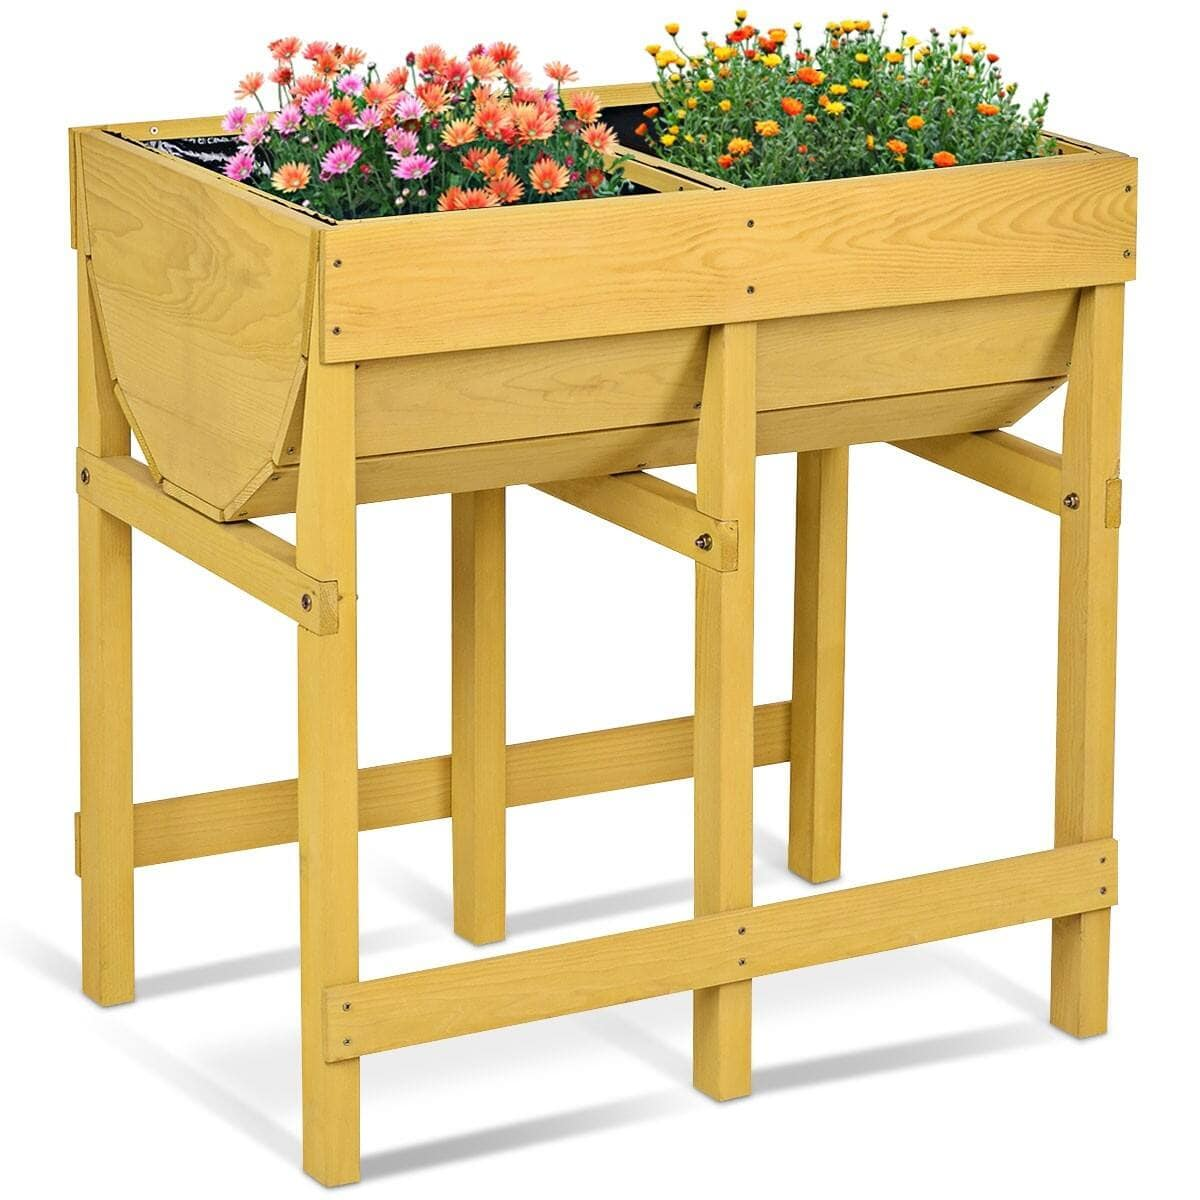 Costway Raised Wooden Planter Vegetable Flower Bed with Liner $53.95 + FS